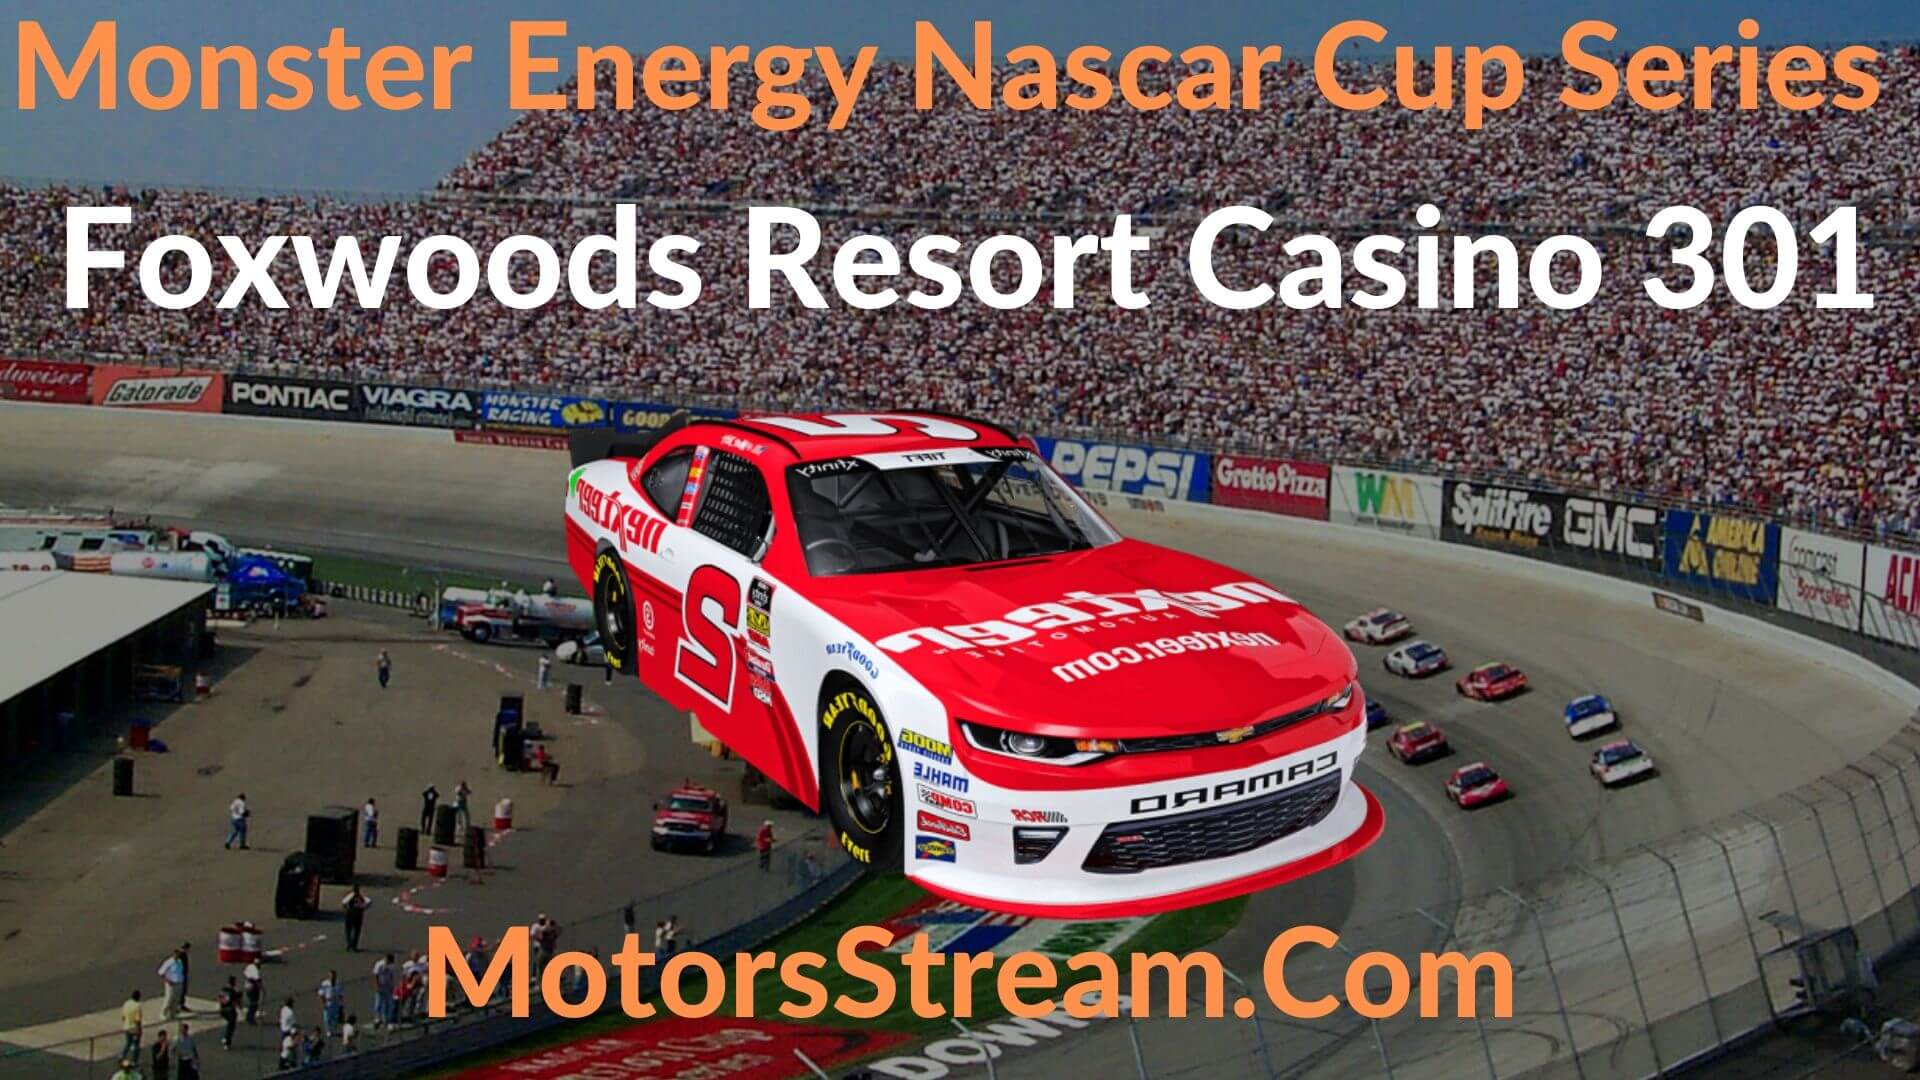 Foxwoods Resort Casino 301 Live Steam | NASCAR CUP 2020